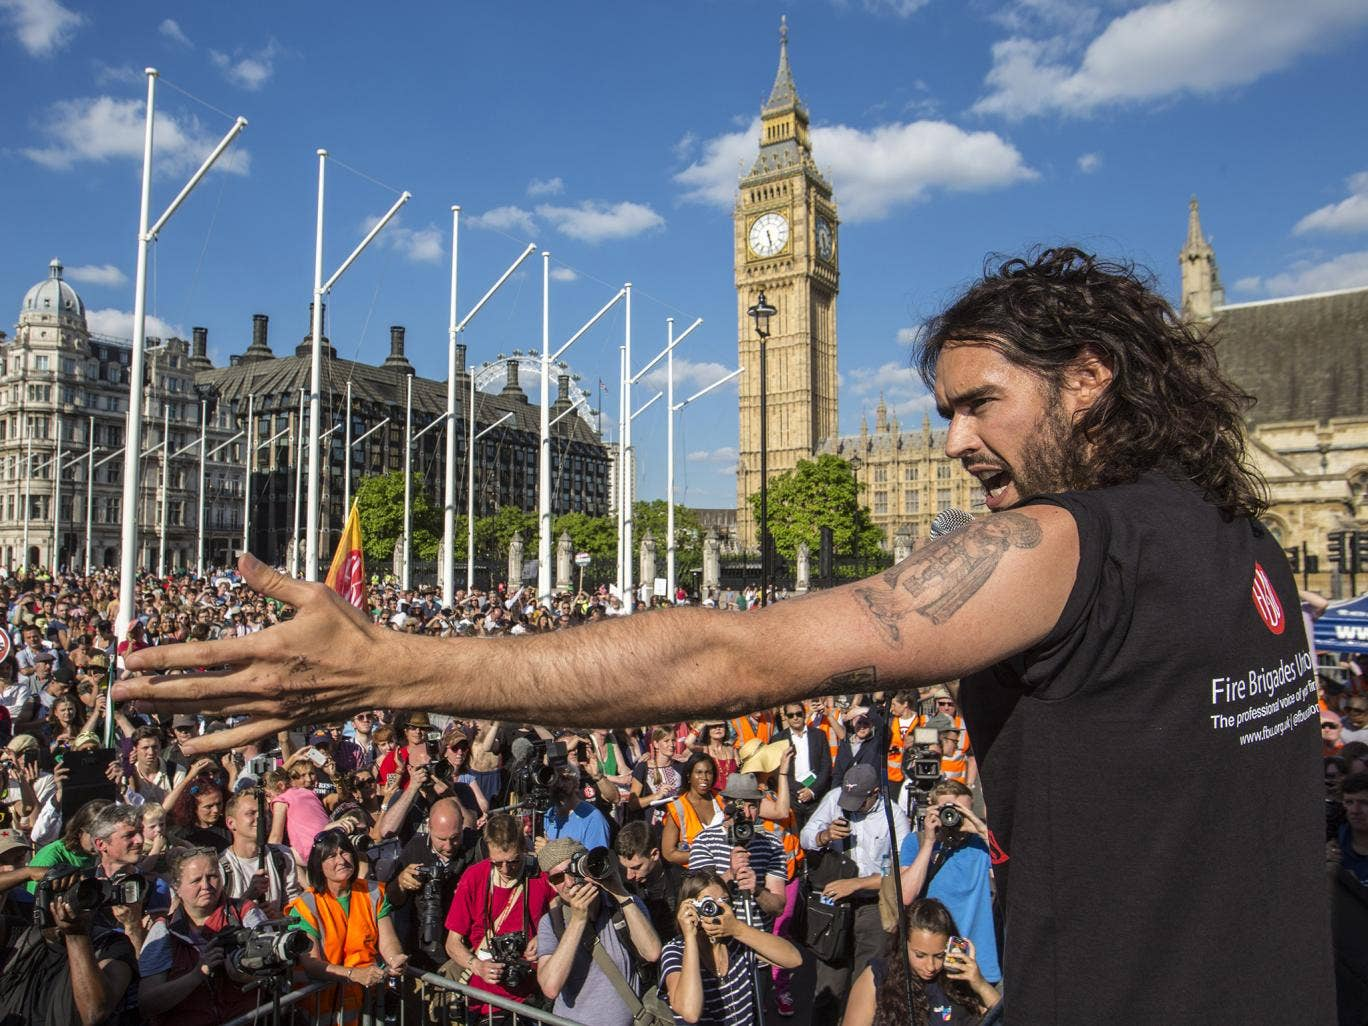 Russell Brand wore a t-shirt which read: 'Firefighters rescue people not bankers'